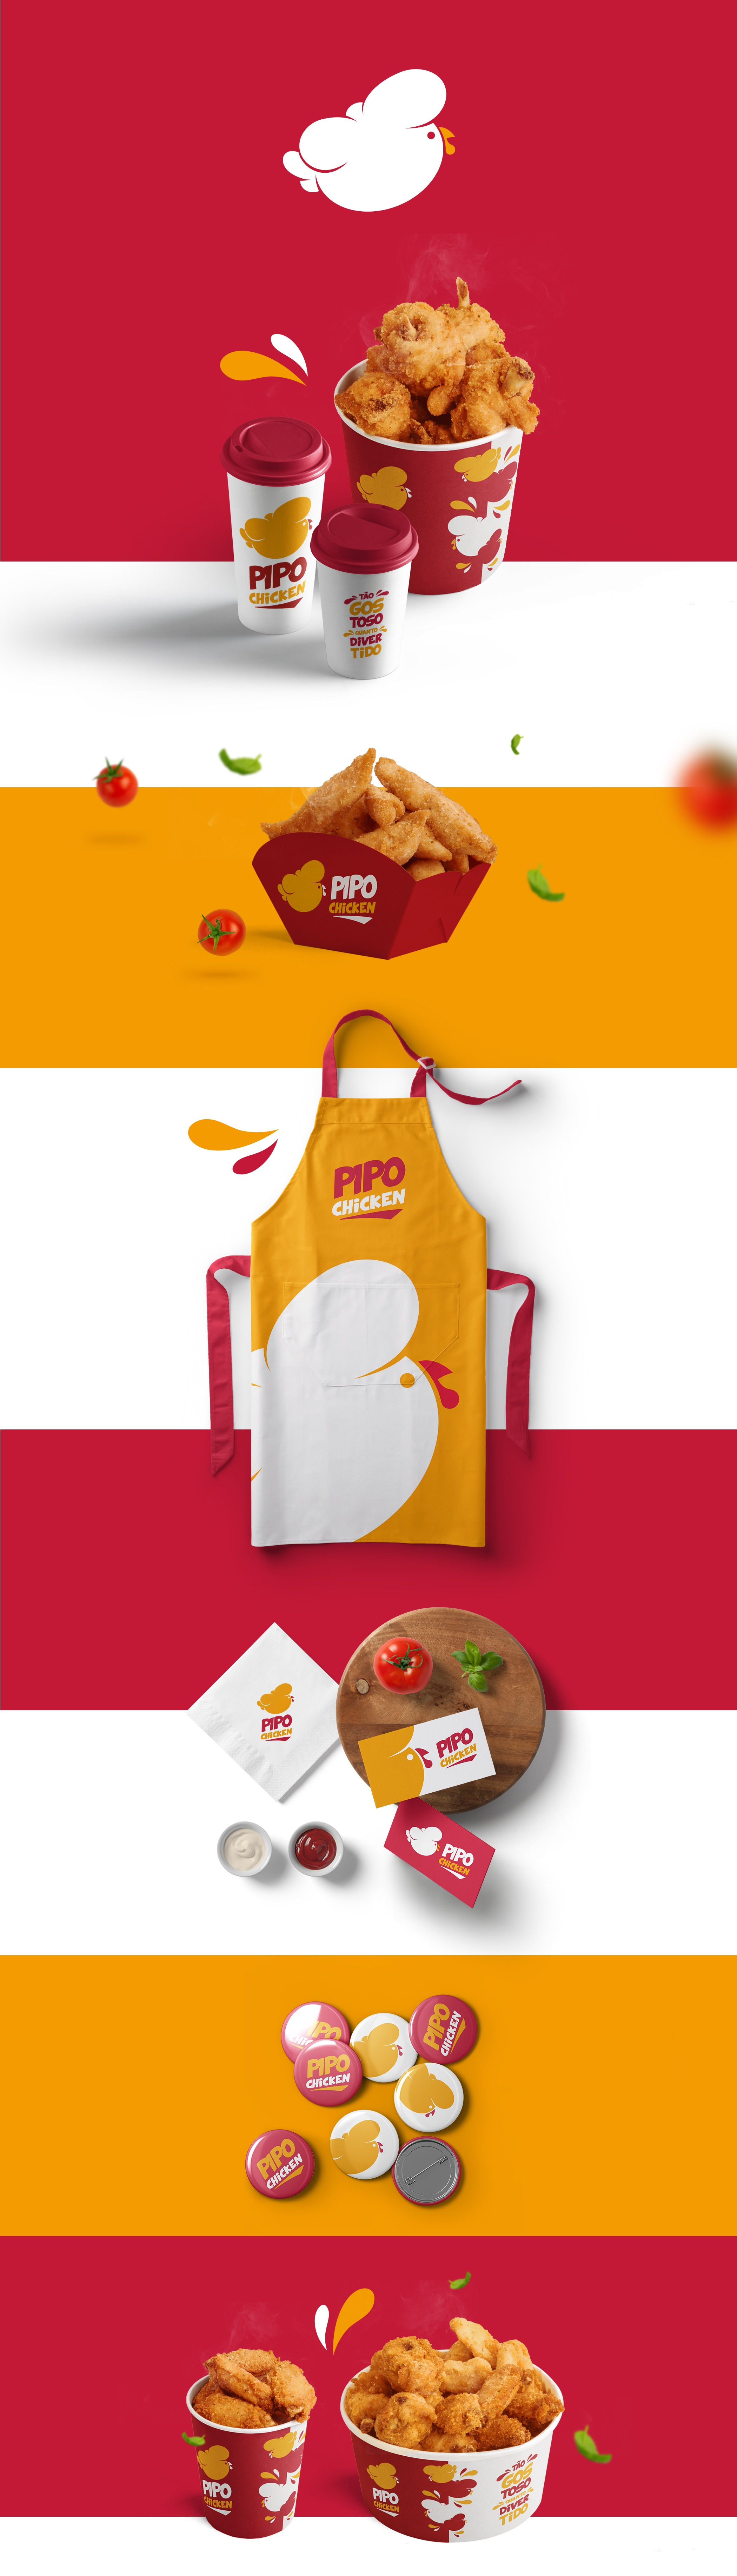 Logo Restaurante Pipo Chicken